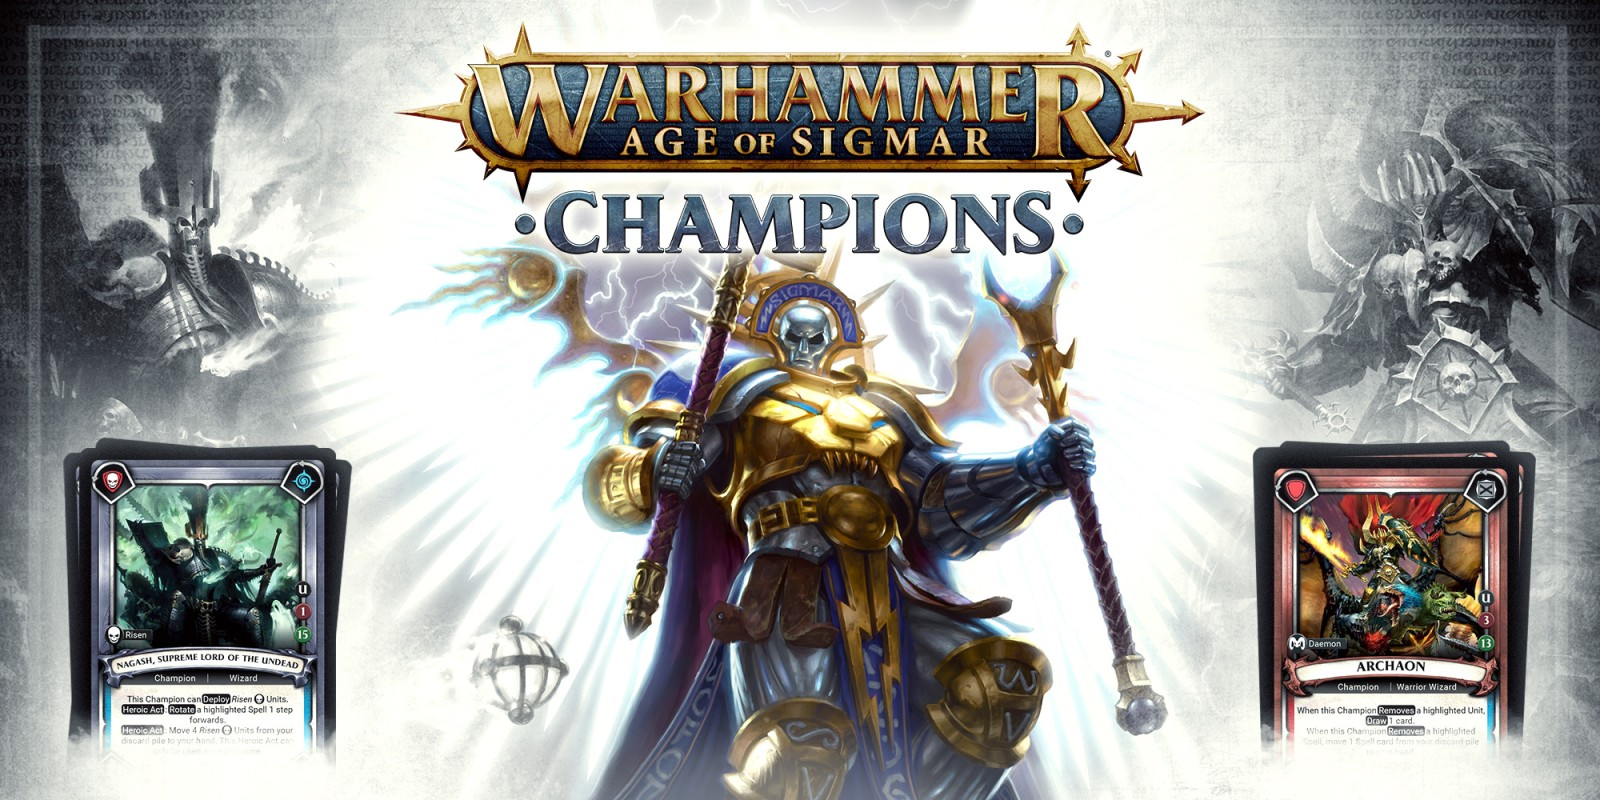 Warhammer Age Of Sigmar Champions nintendo switch review